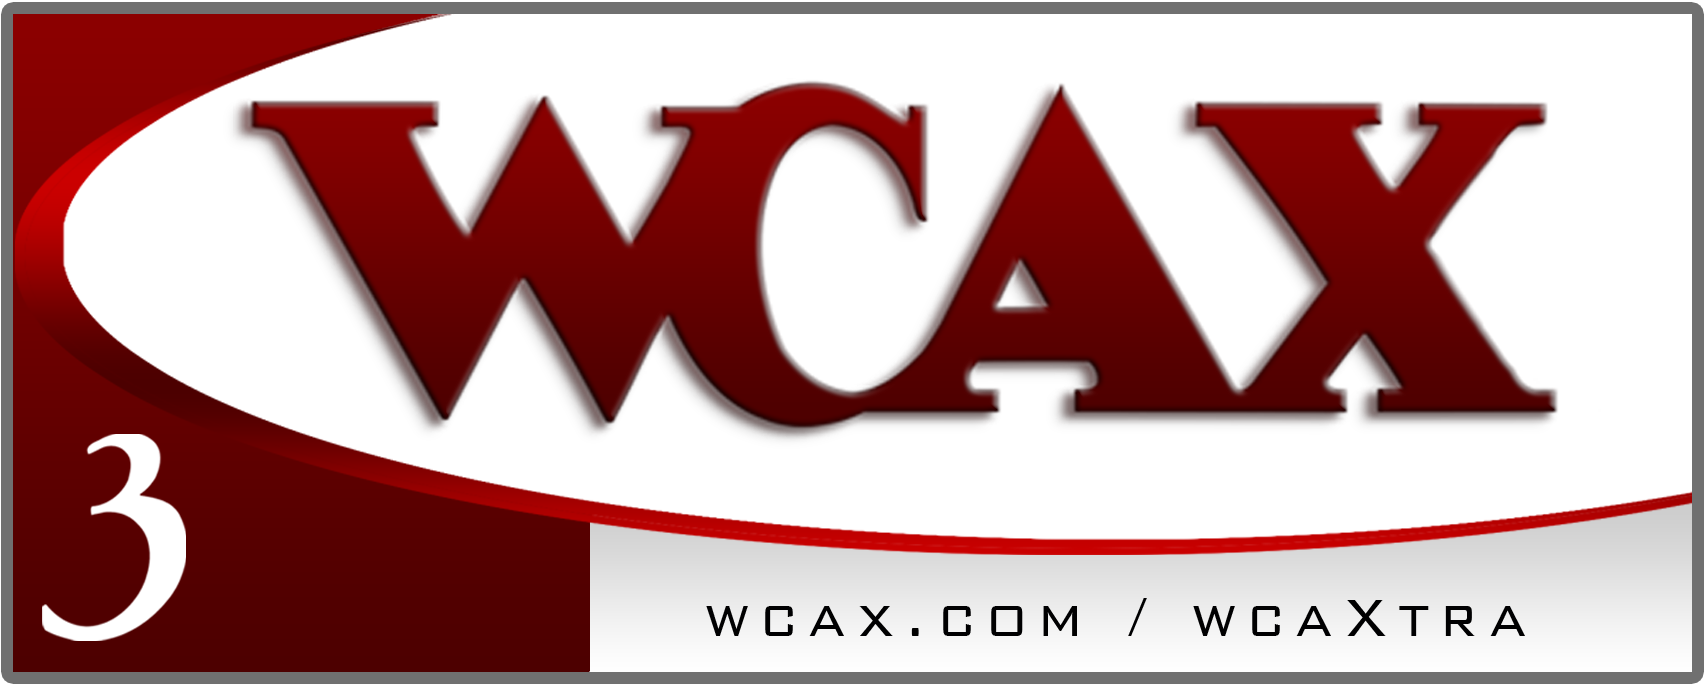 9 WCAX